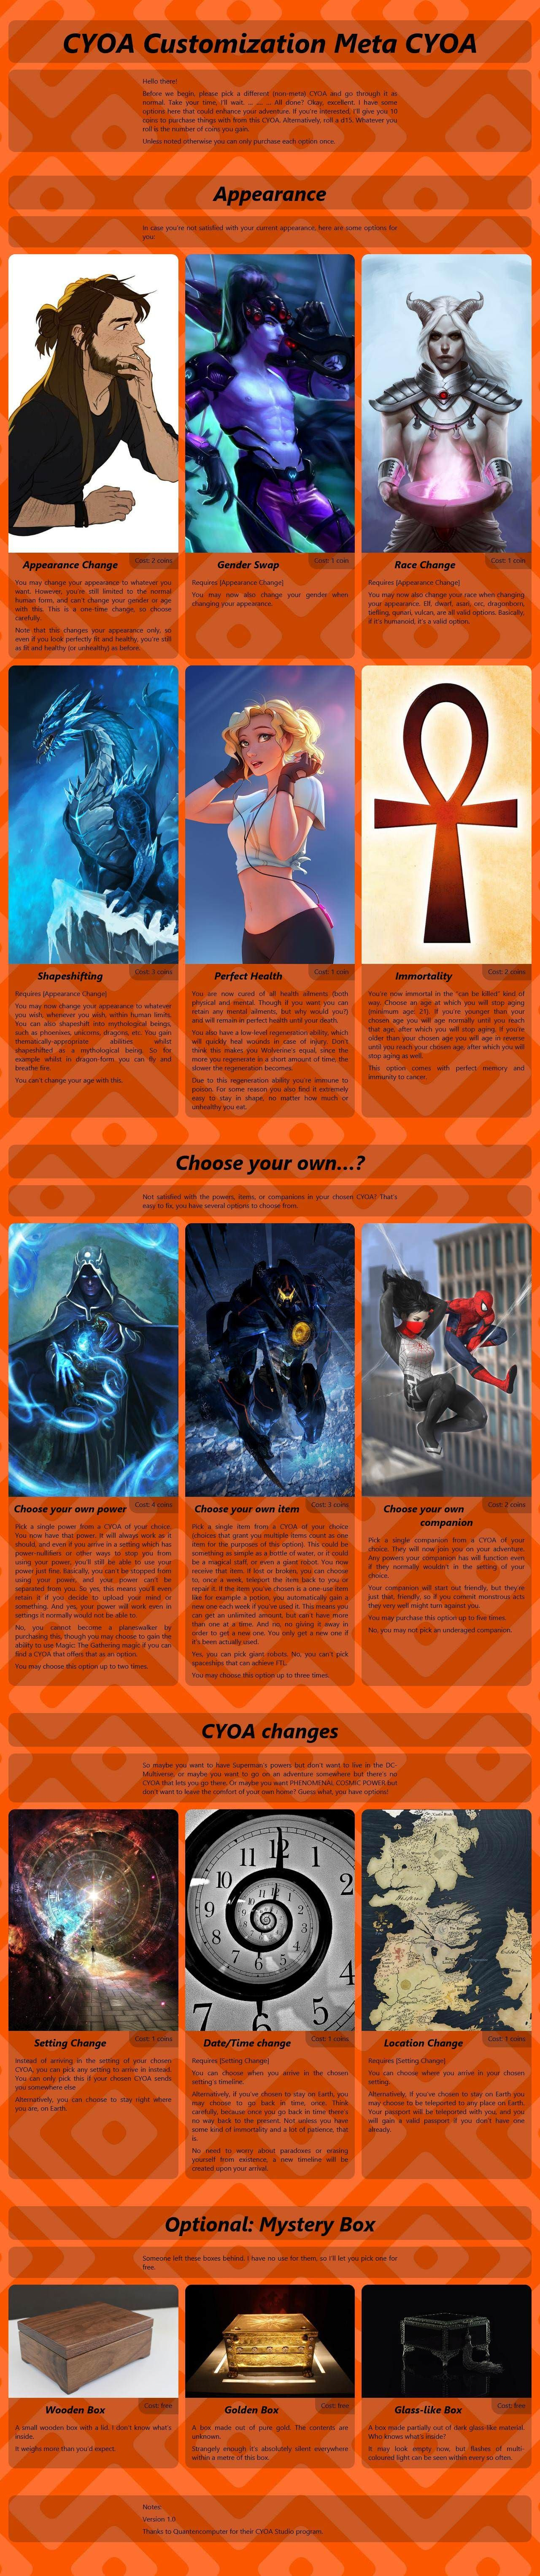 15++ Make a choose your own adventure game online ideas in 2021